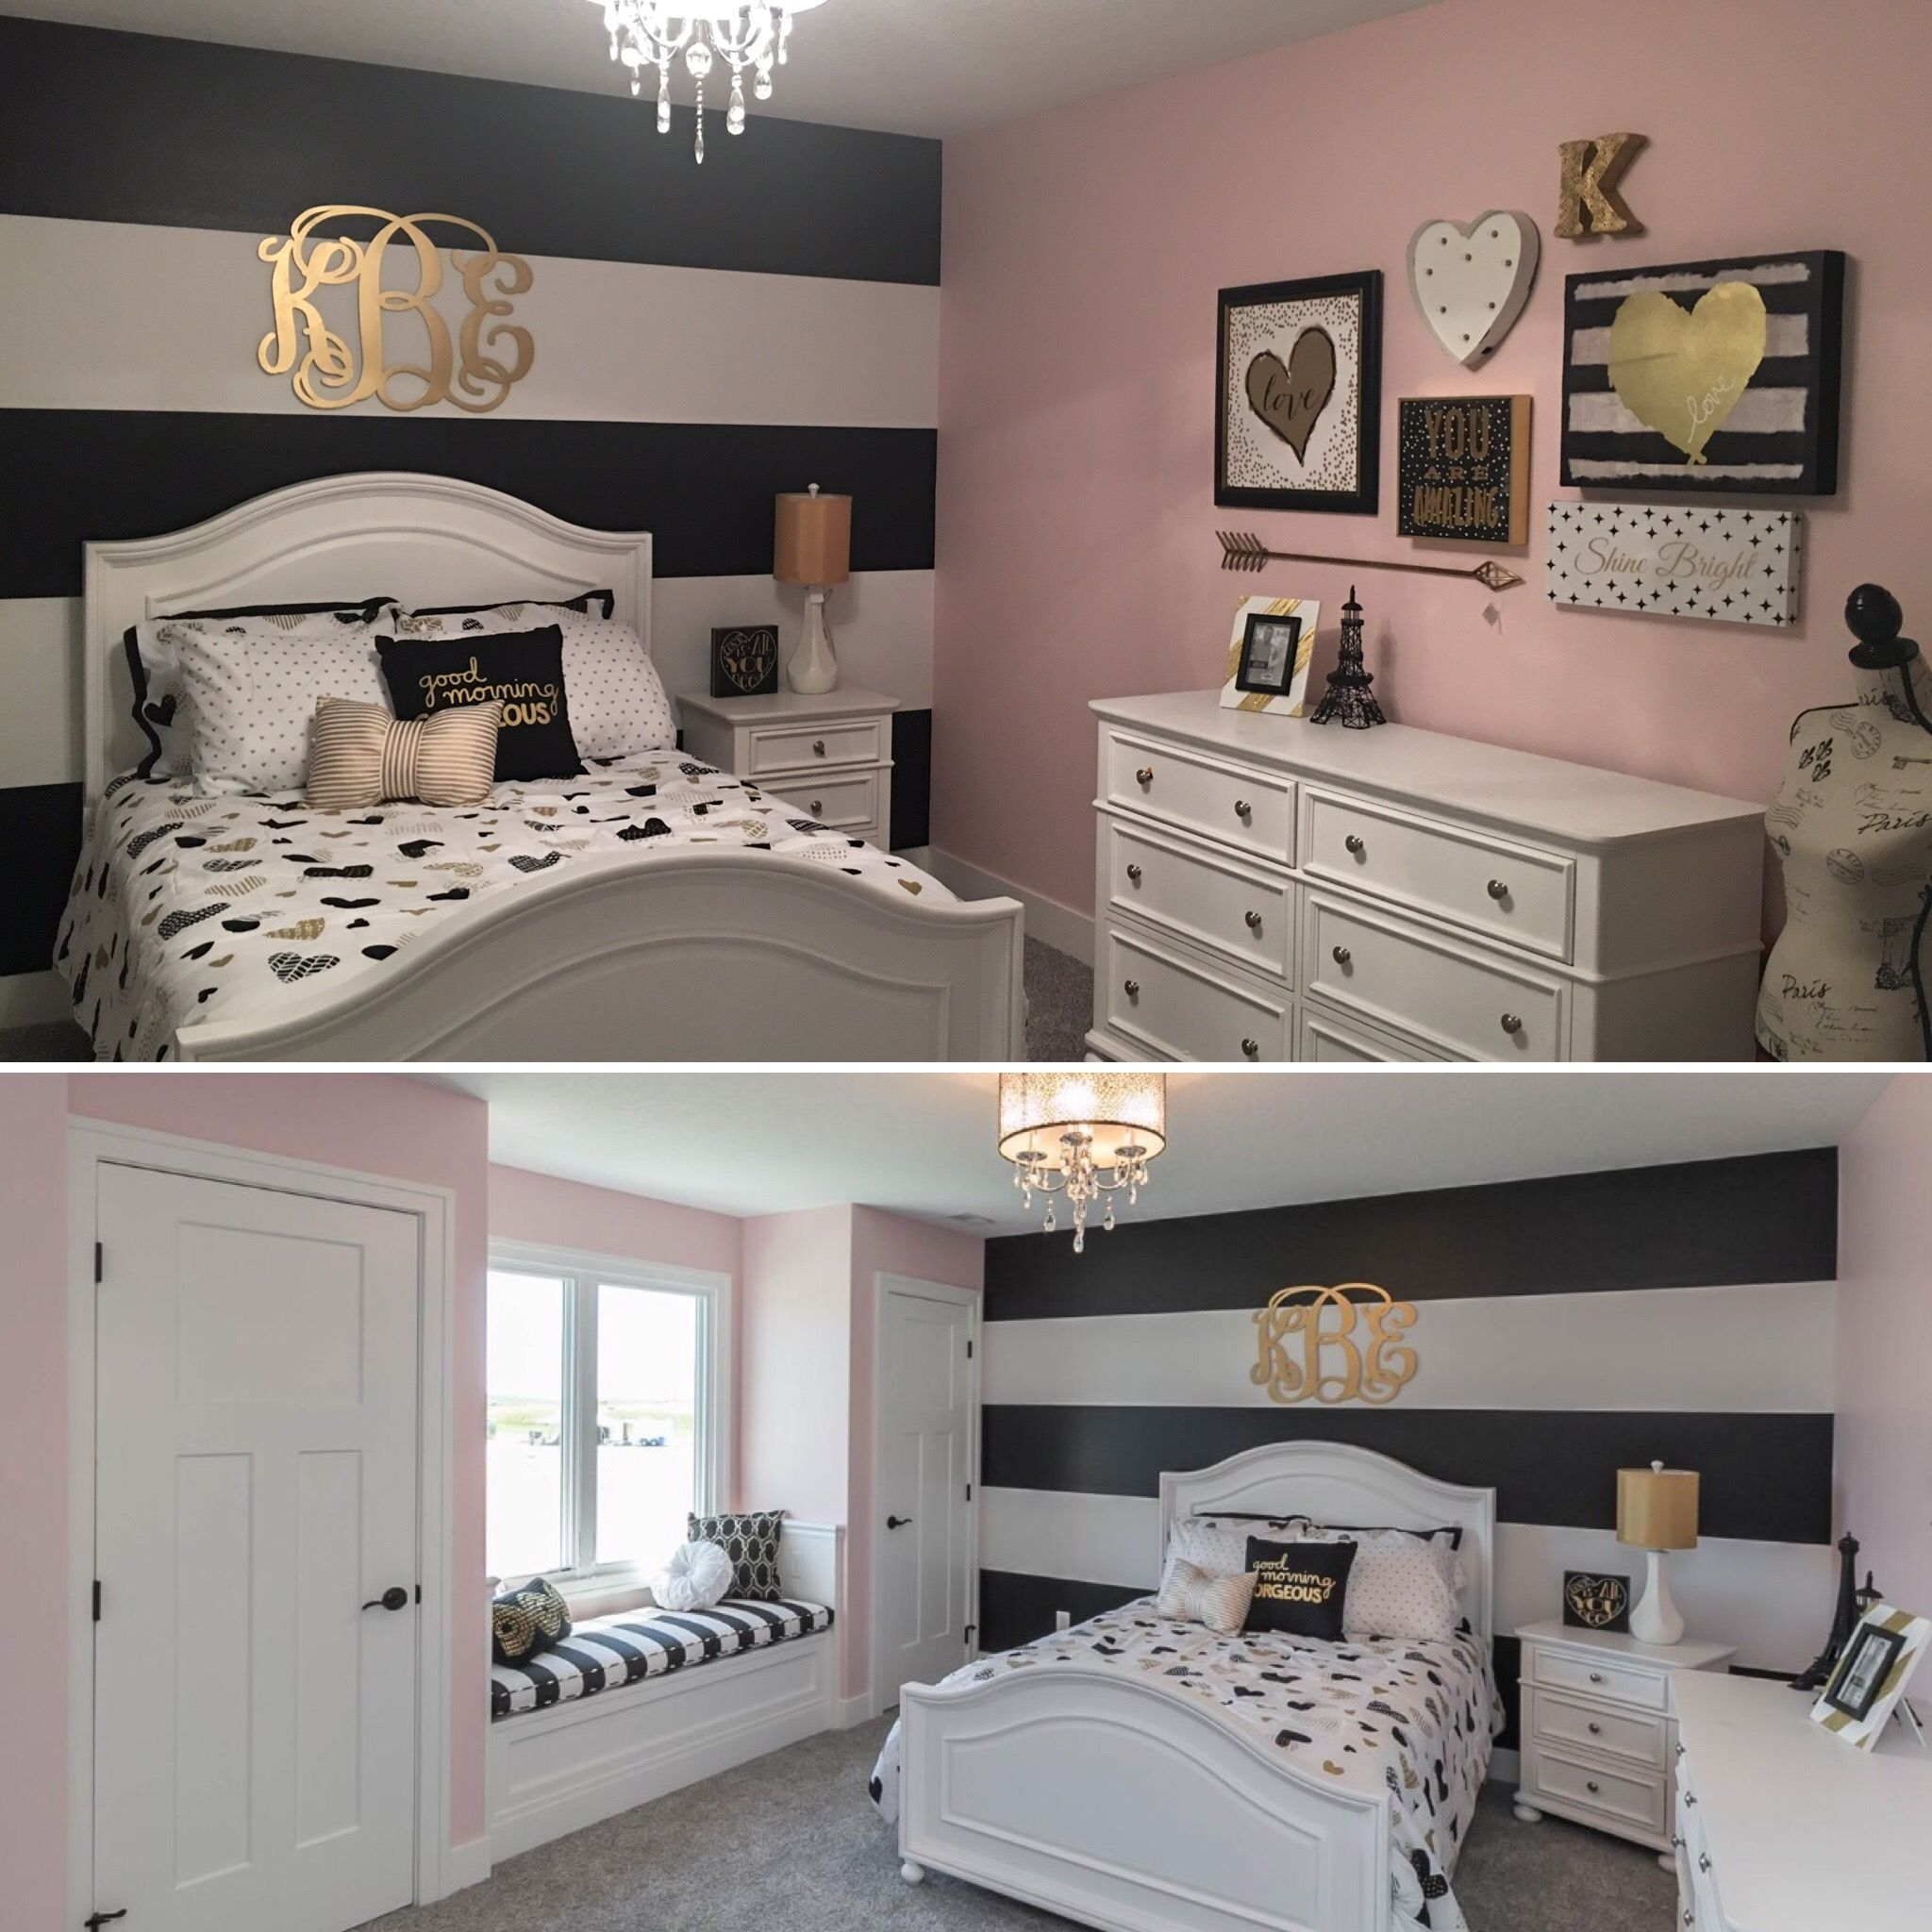 Girls Room With Black And Gold Accents All Very